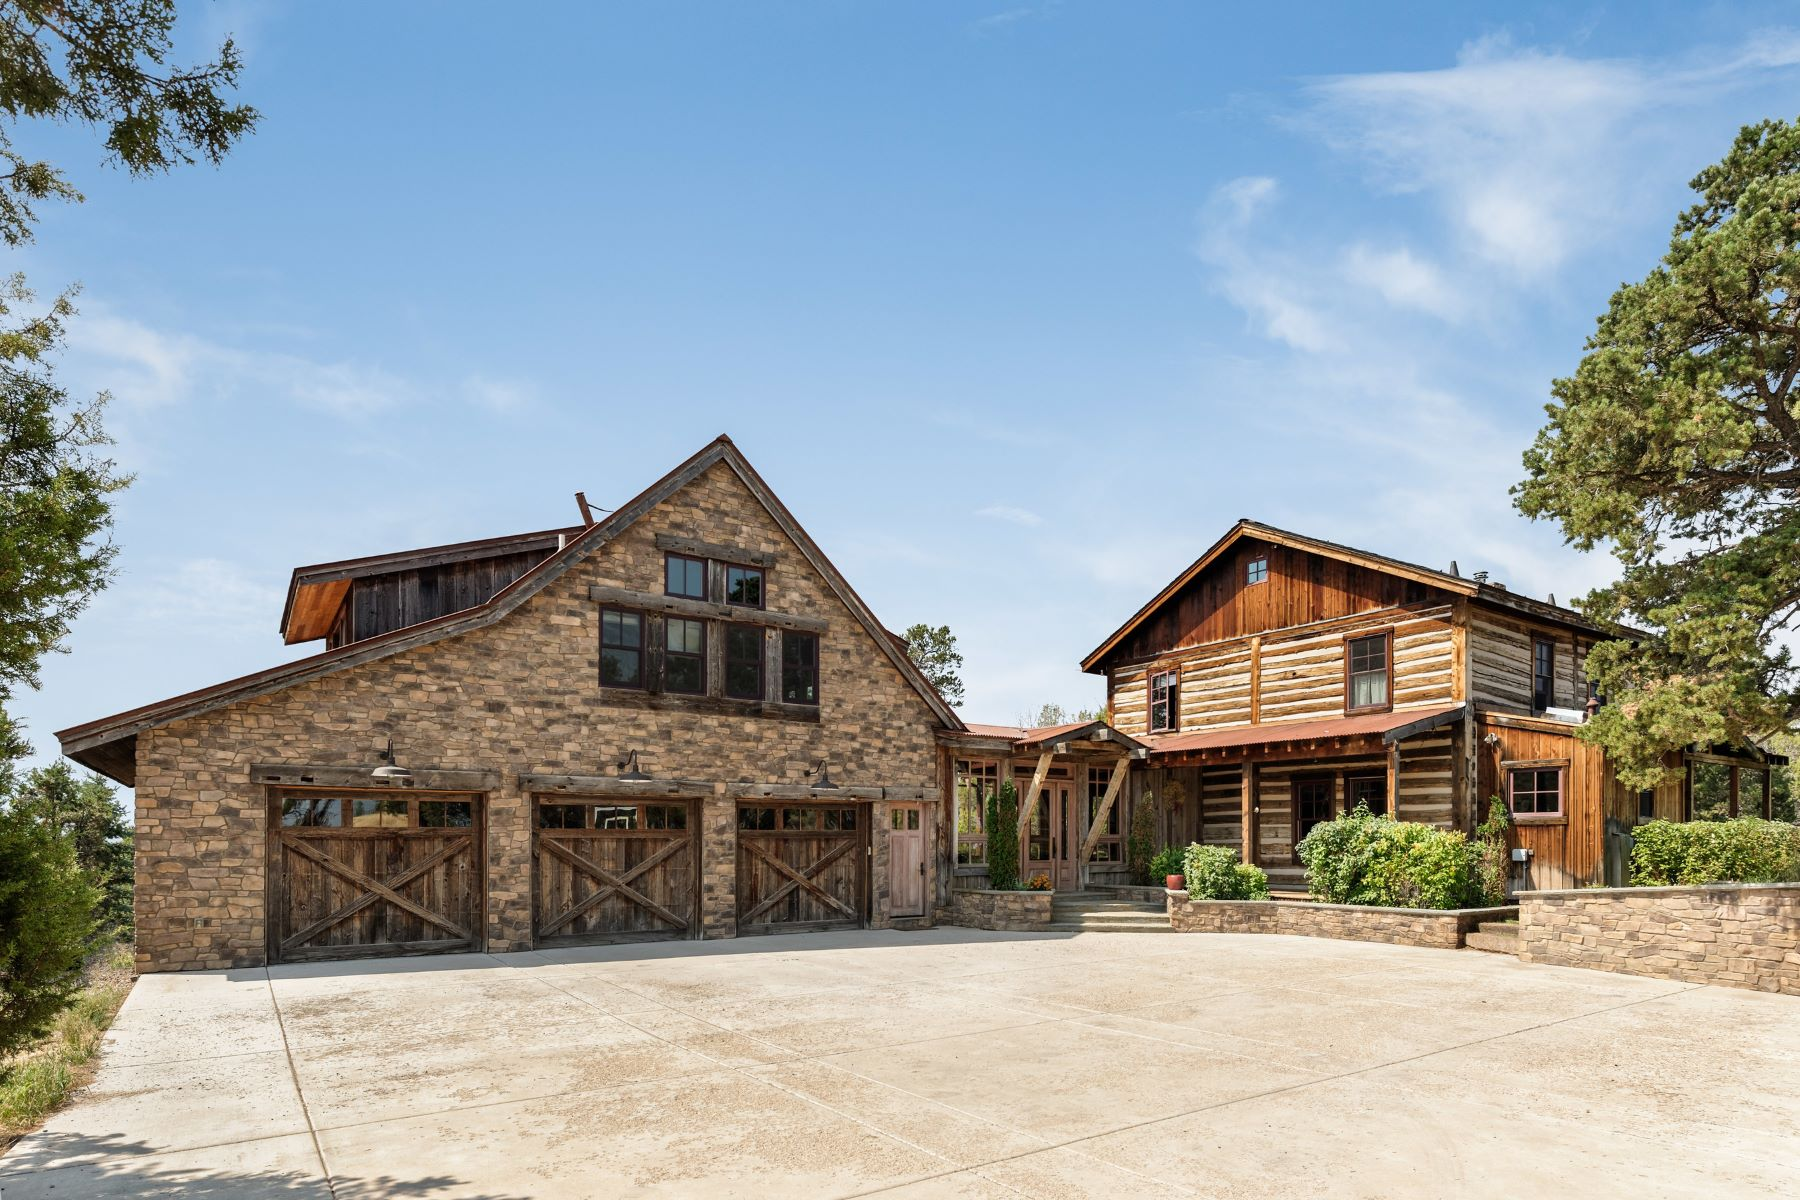 Single Family Home for Active at Stirling Ranch 409 Skipper Drive Carbondale, Colorado 81623 United States